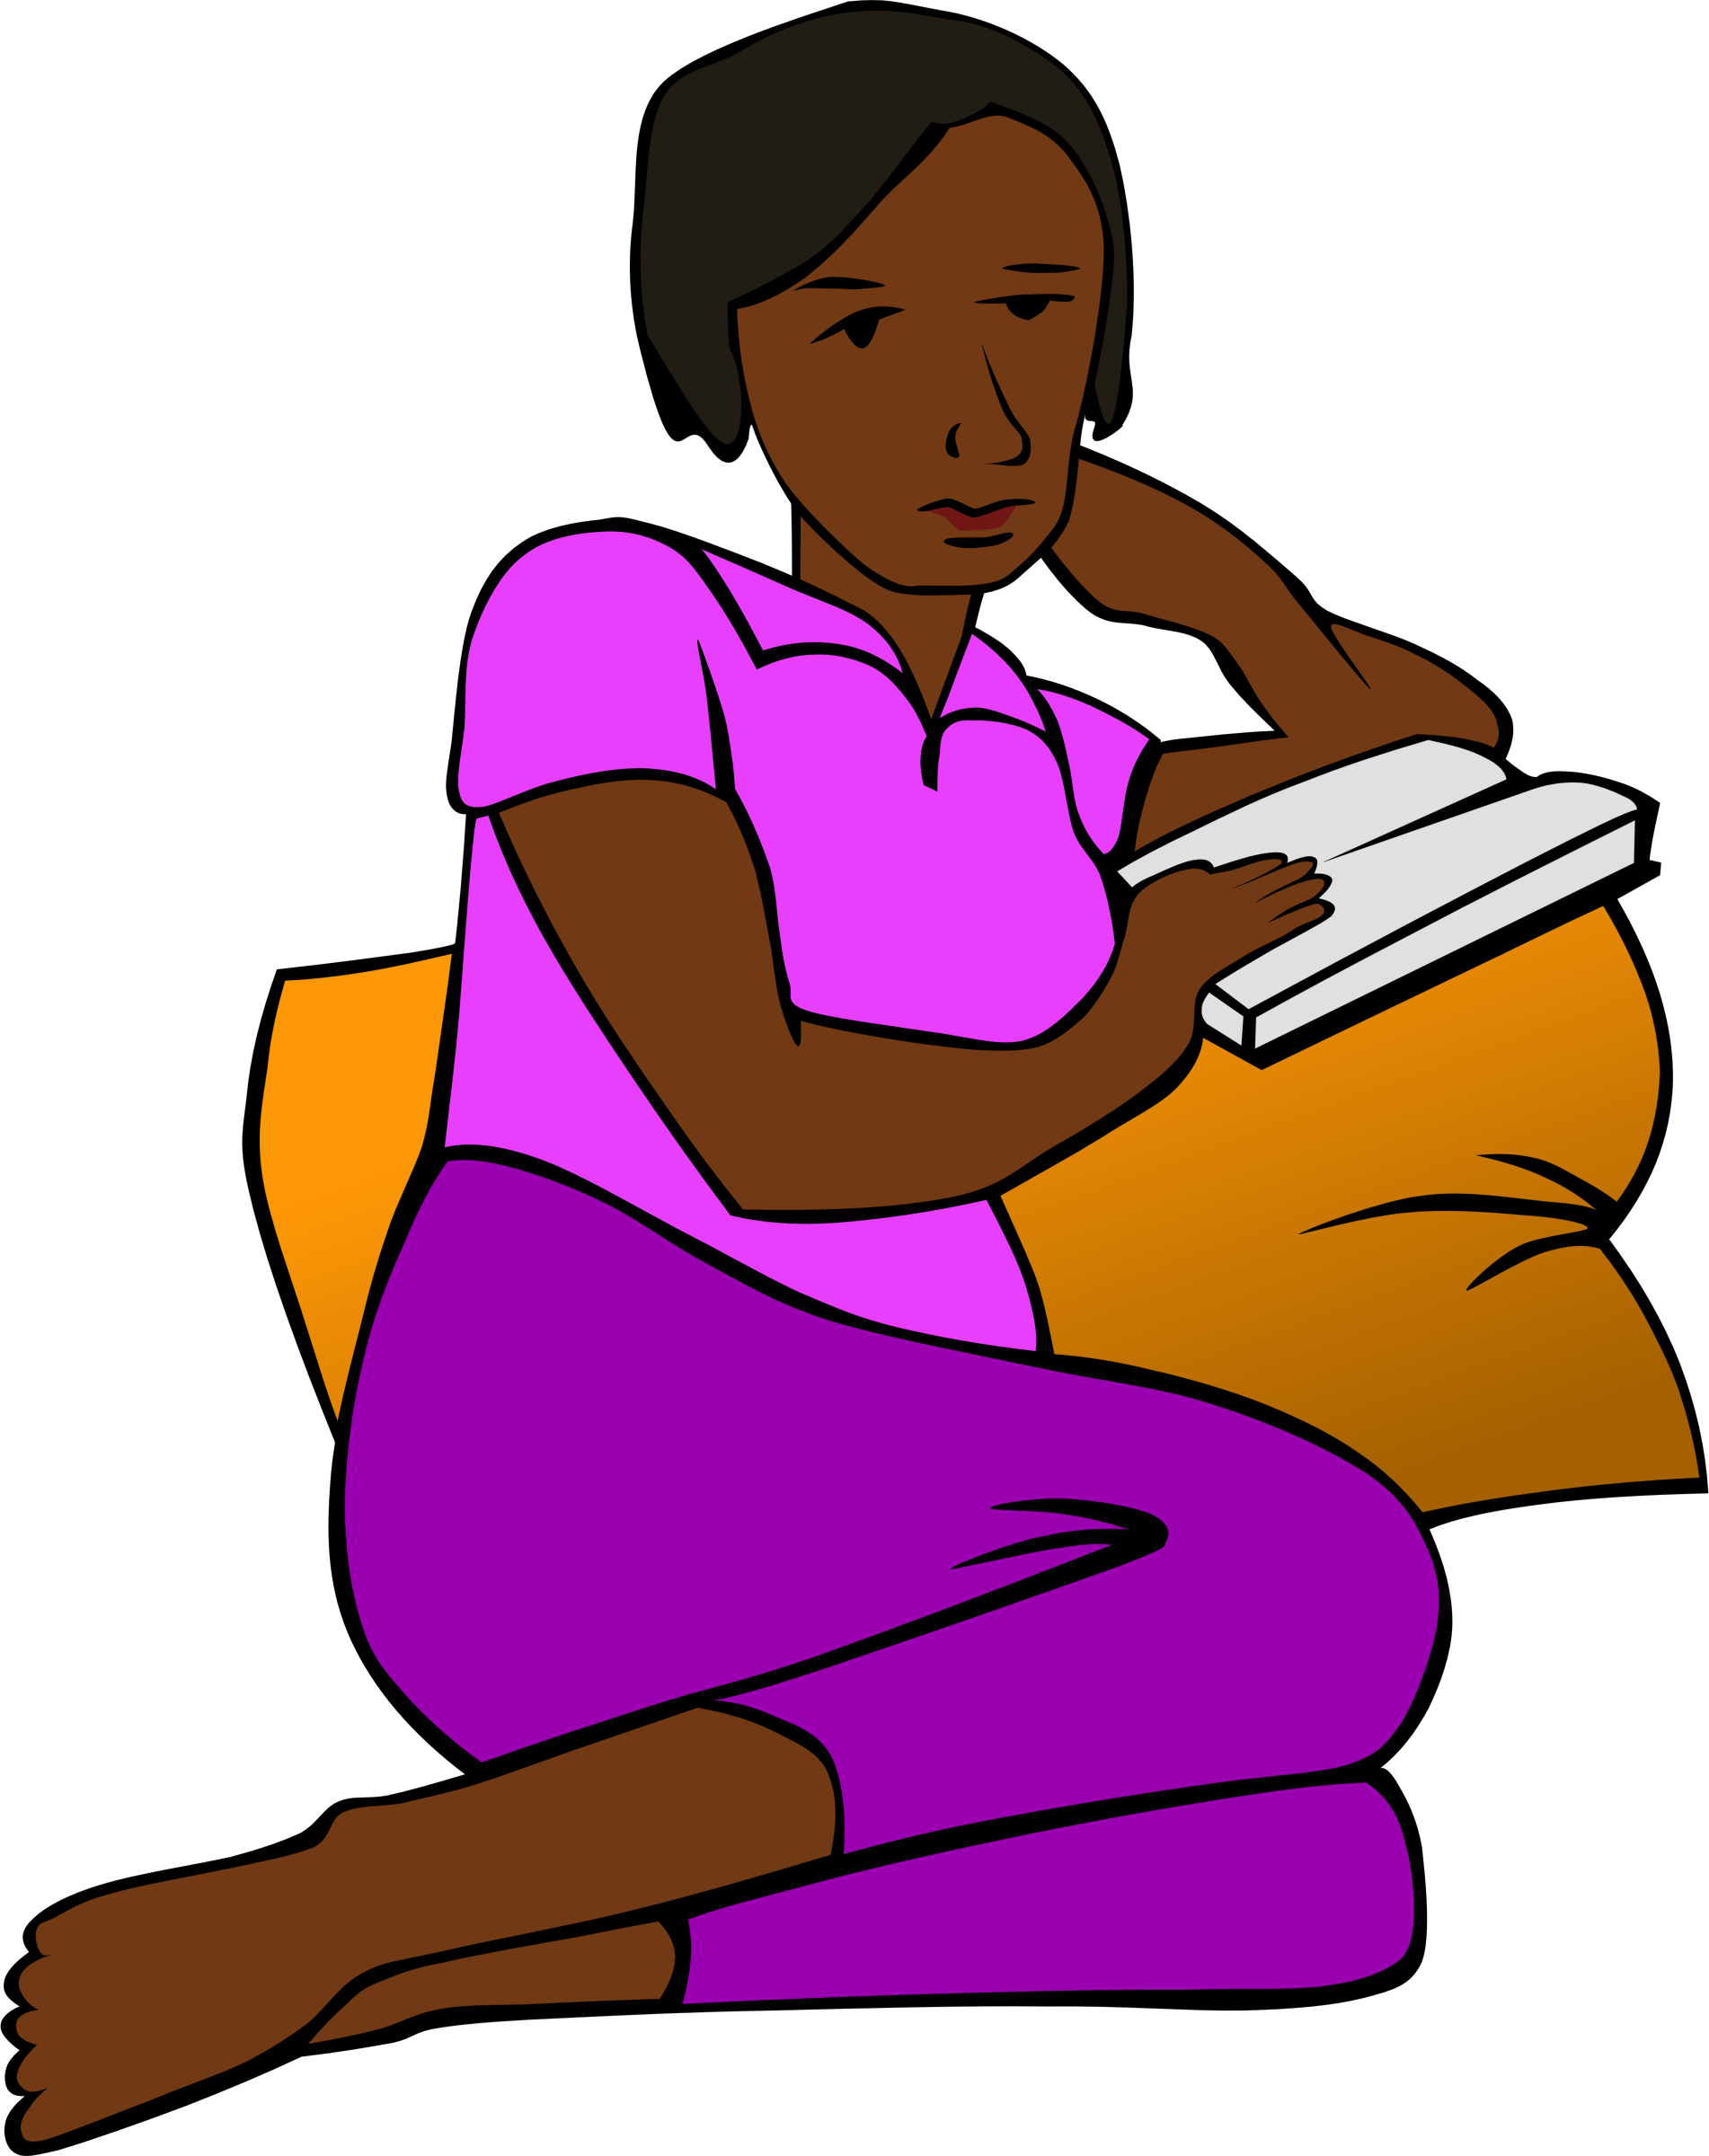 African Woman Reading more colour by The Martin